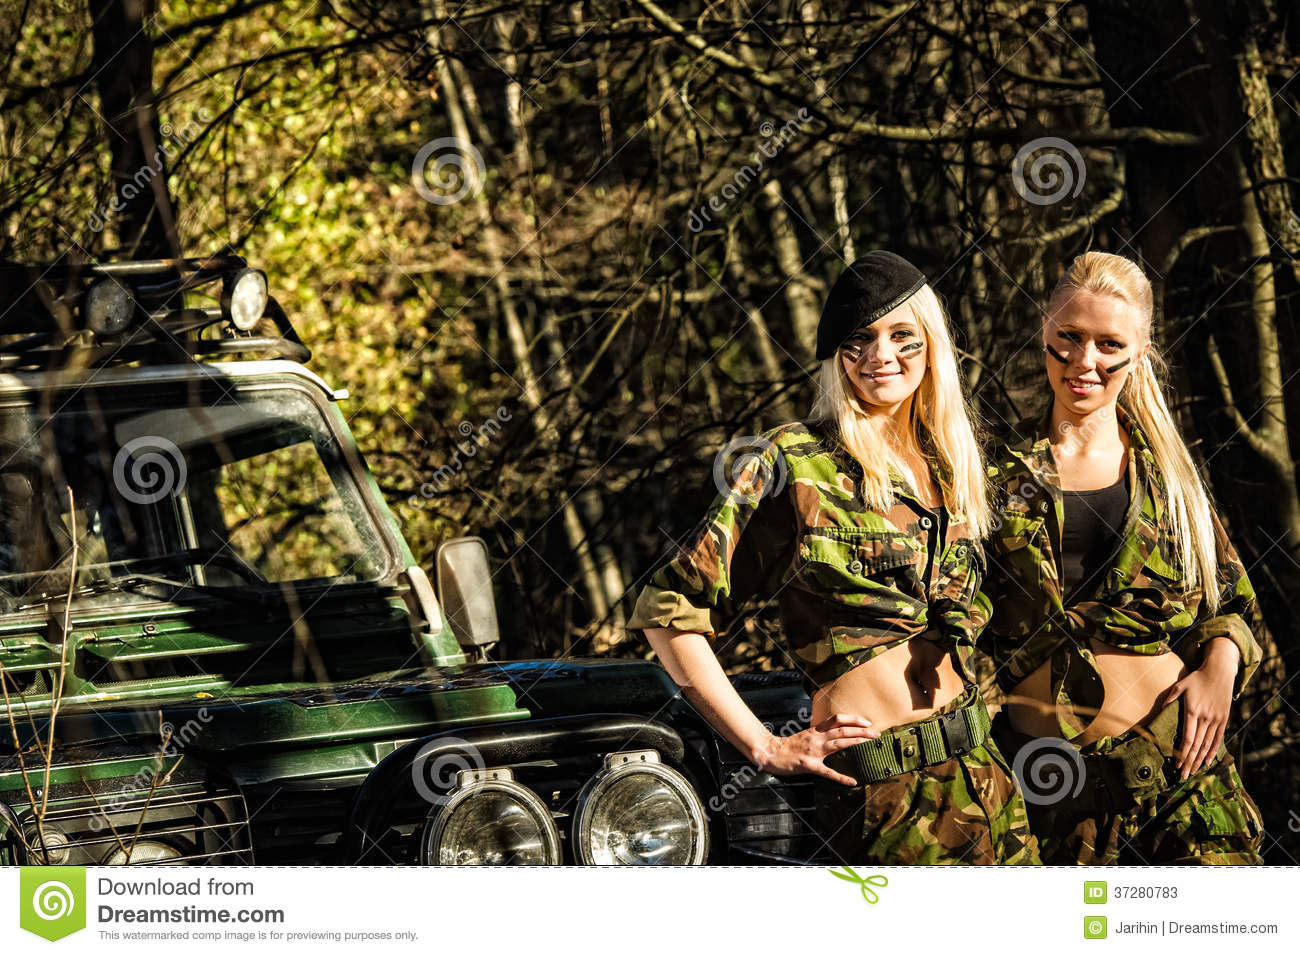 Beautiful girls on camouflage outfit, teamwork and off-road vehicle.